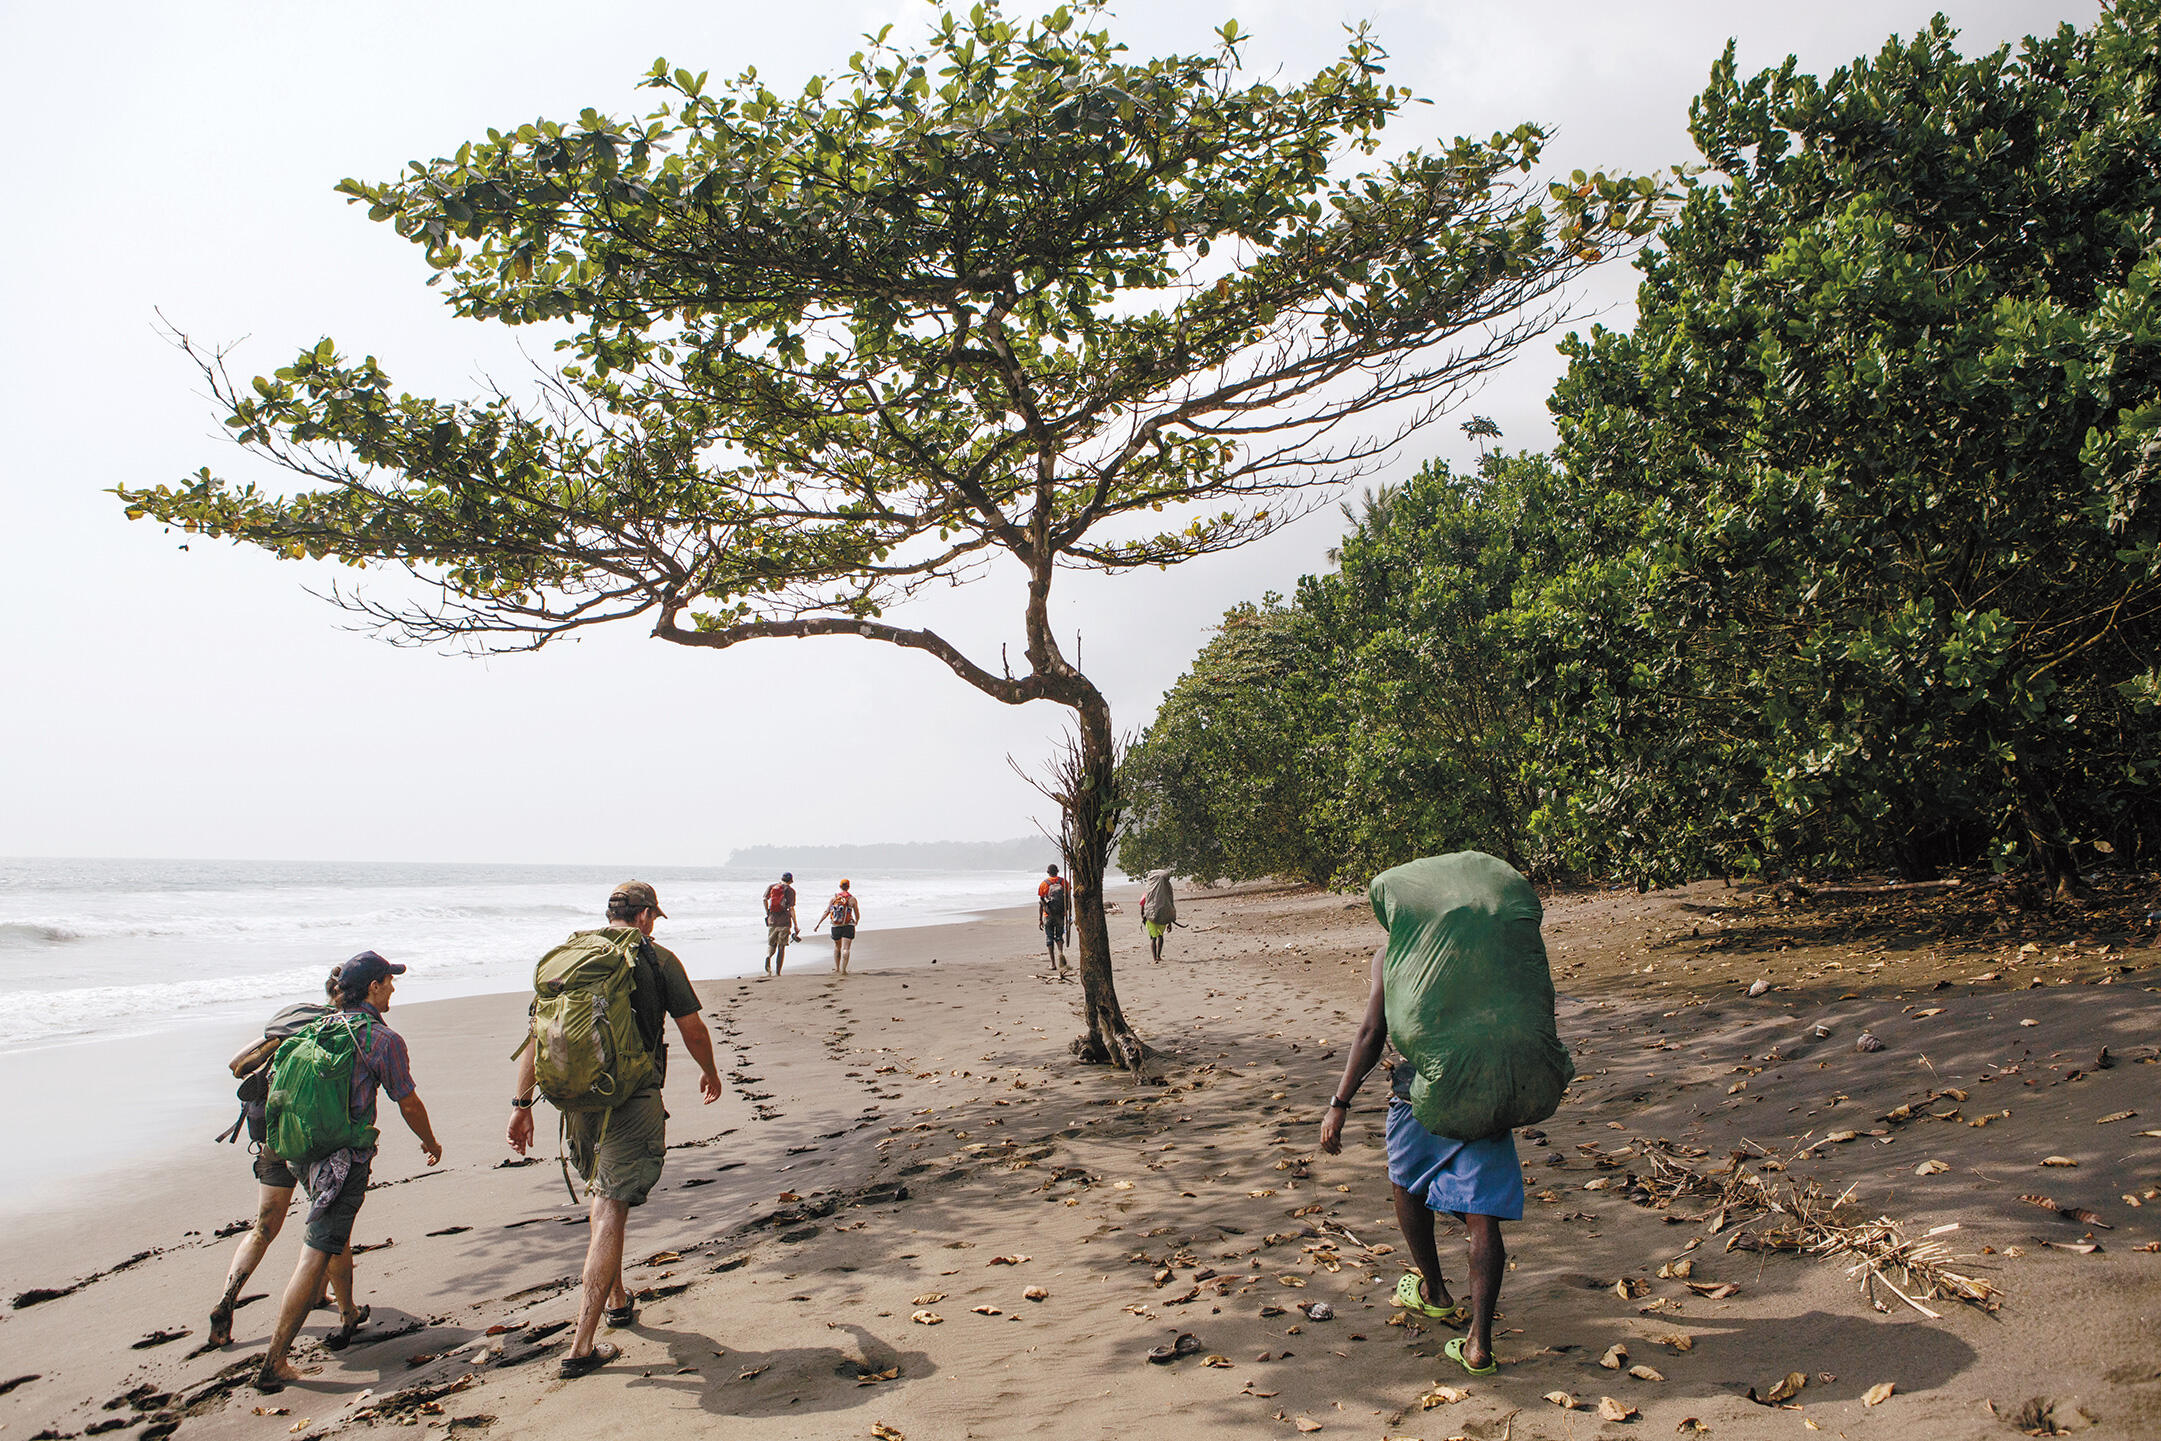 Expedition members walk to Moraka field camp on the first day of the trip to the caldera, spotting numerous birds, including Western Reef-Herons and Pied Crows. Tristan Spinski